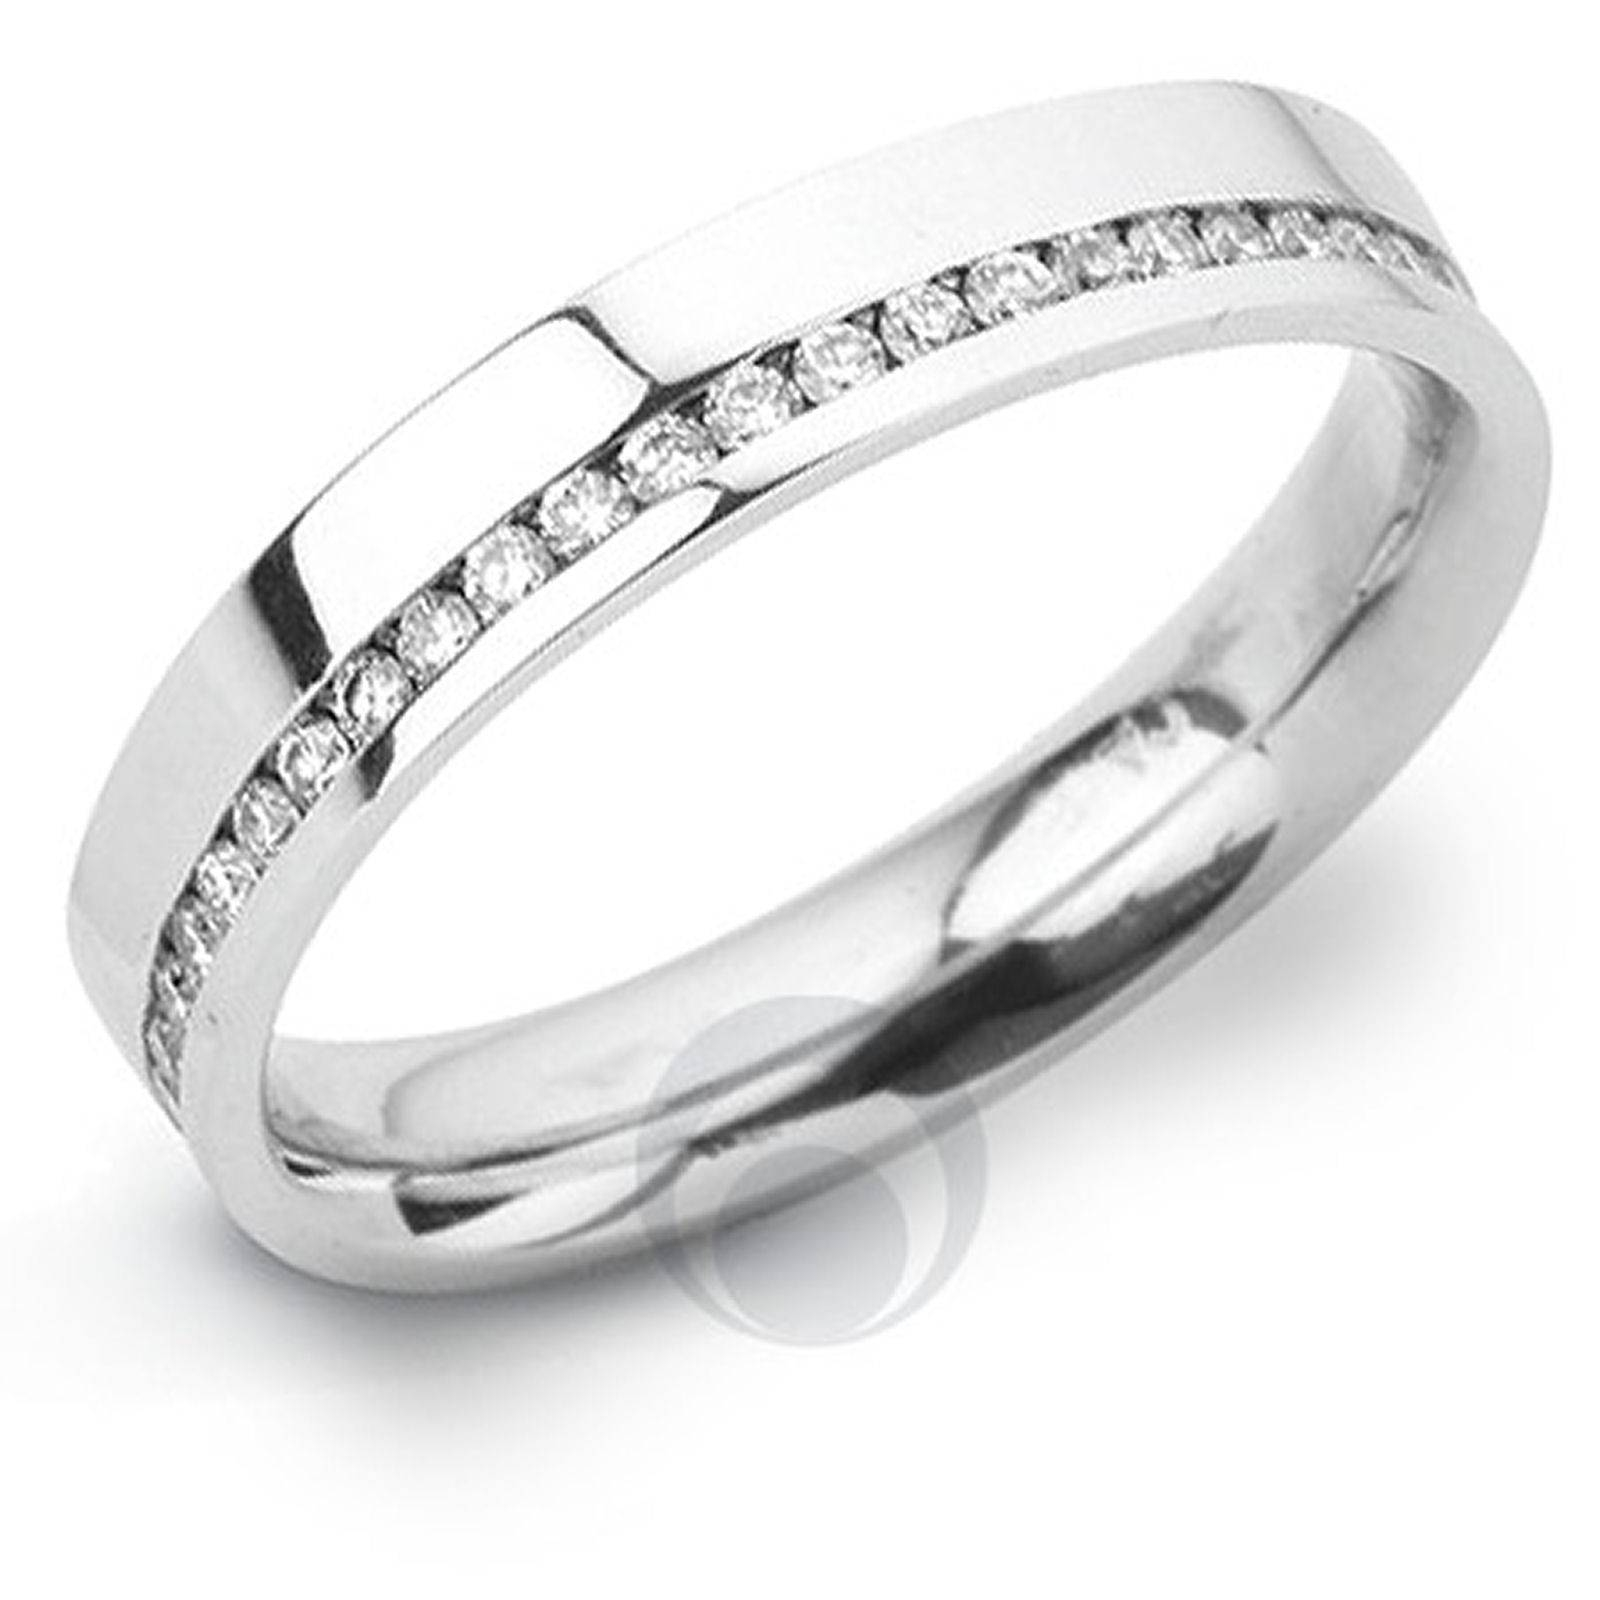 Channel Diamond Platinum Wedding Ring Wedding Dress From The Regarding Latest Platium Wedding Bands (Gallery 3 of 15)